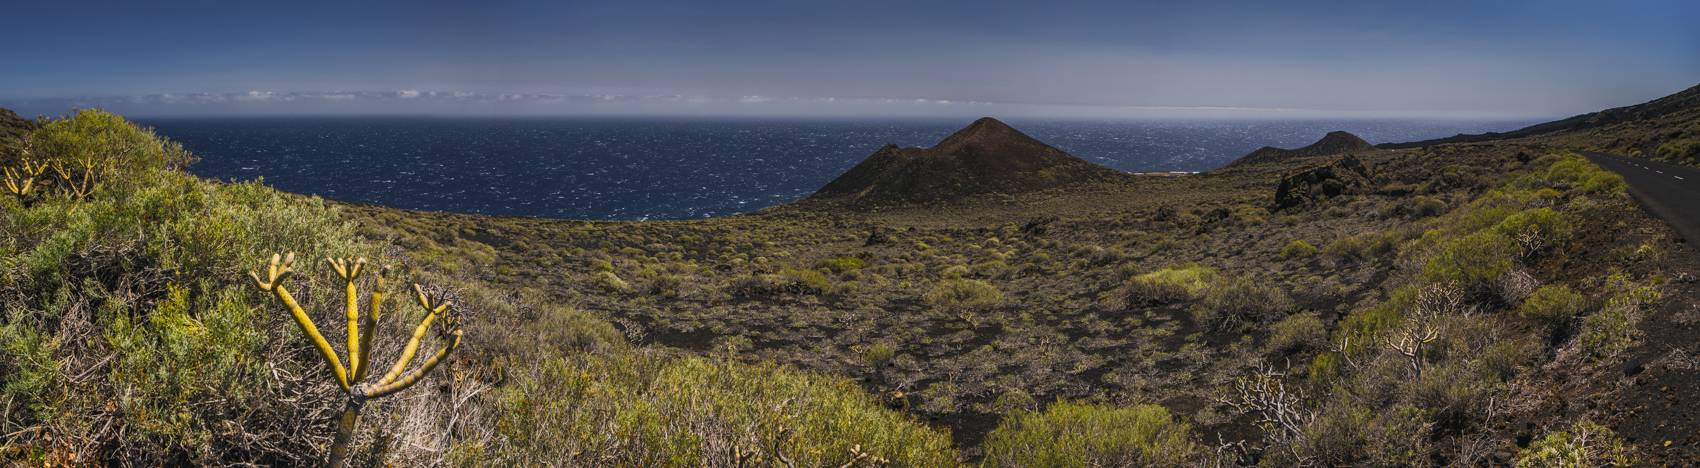 Photo Voyages : Îles Canaries #25